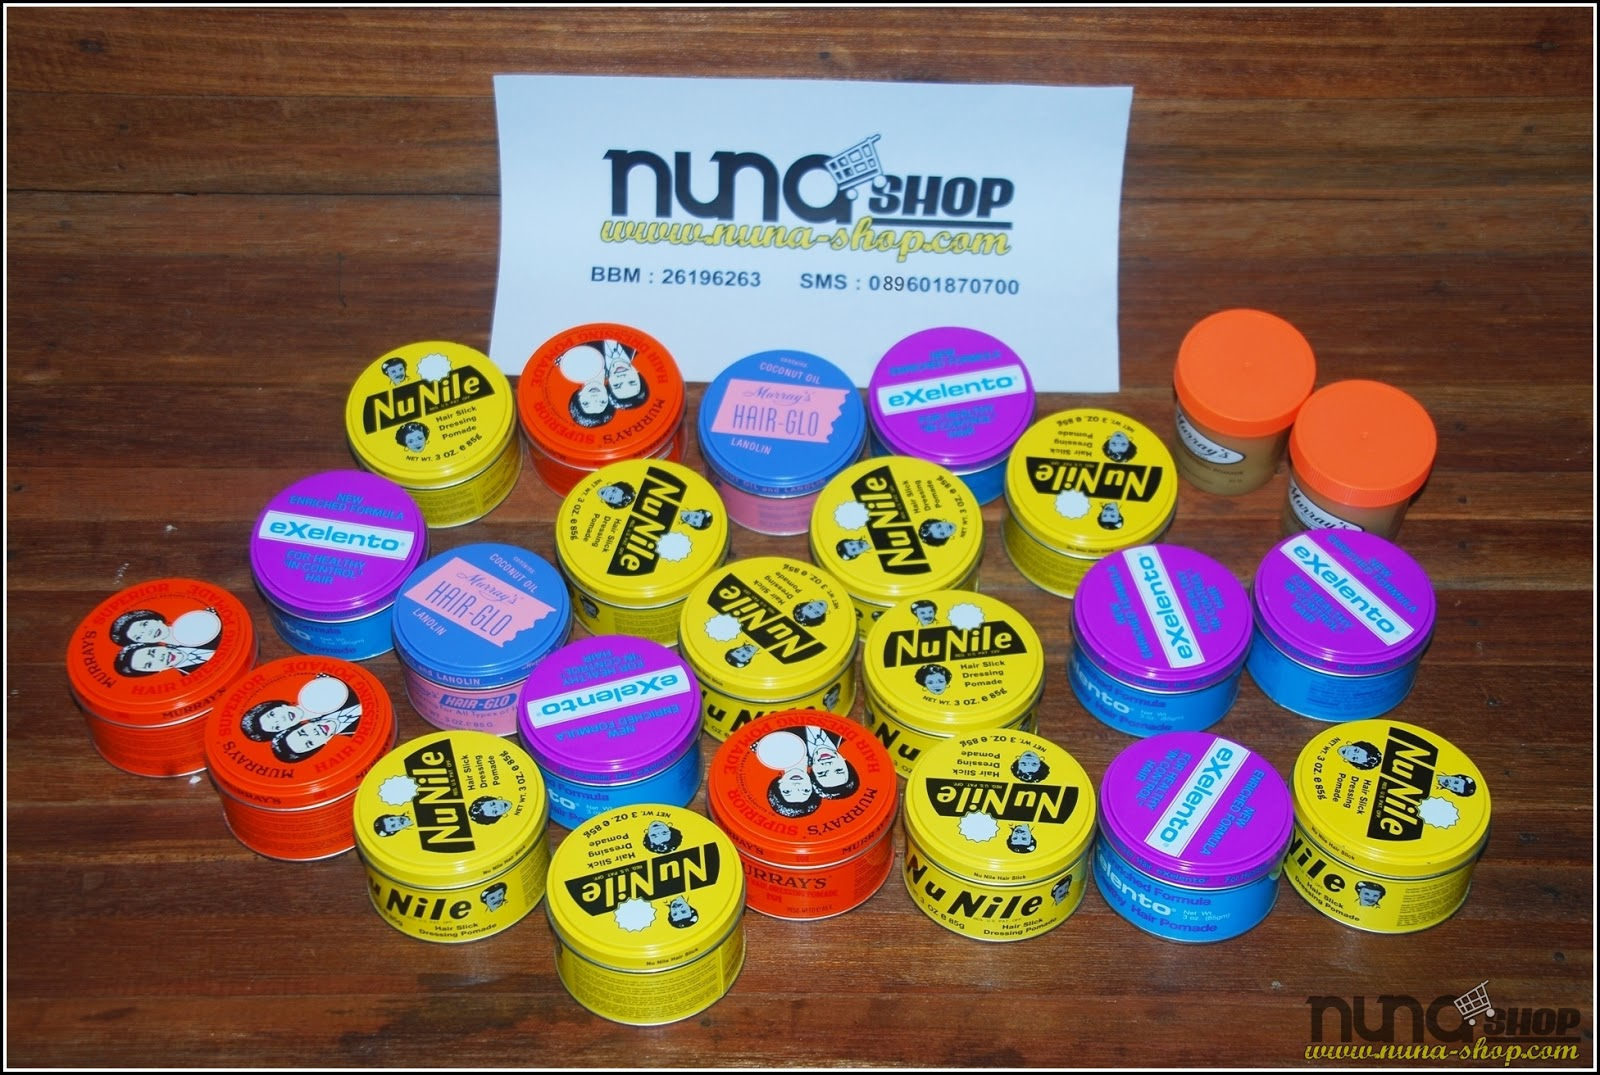 Jual Murah Murrays Pomade Original- Superior, Superlight, Nu Nile, Exelento, Hairglo Original From USA